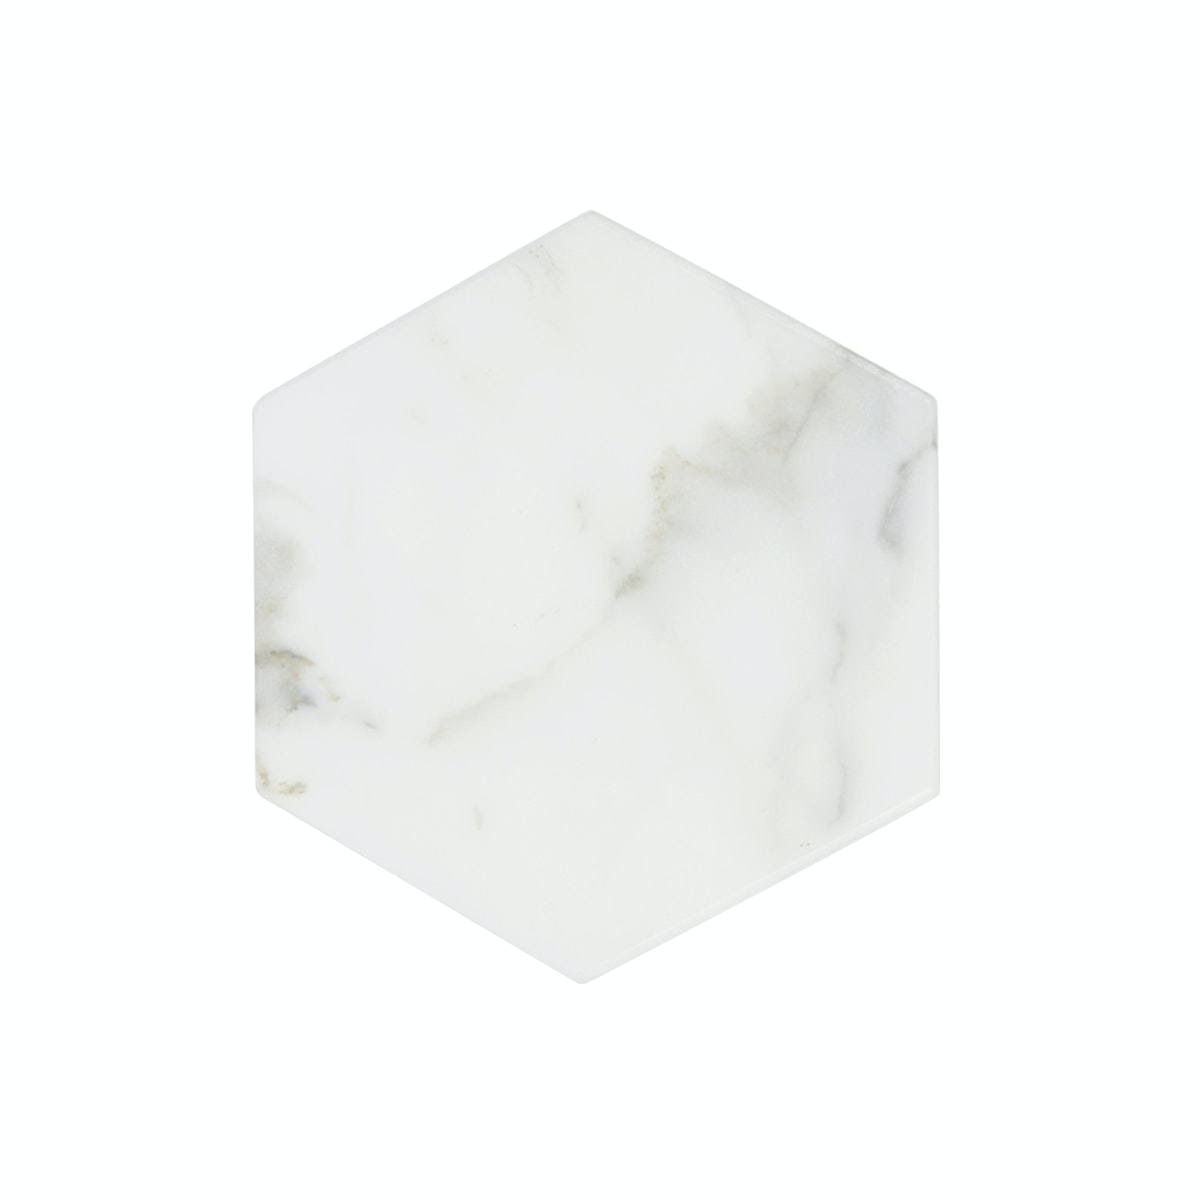 Glerry Home Decor Hexagon White Moonstone Marble D20